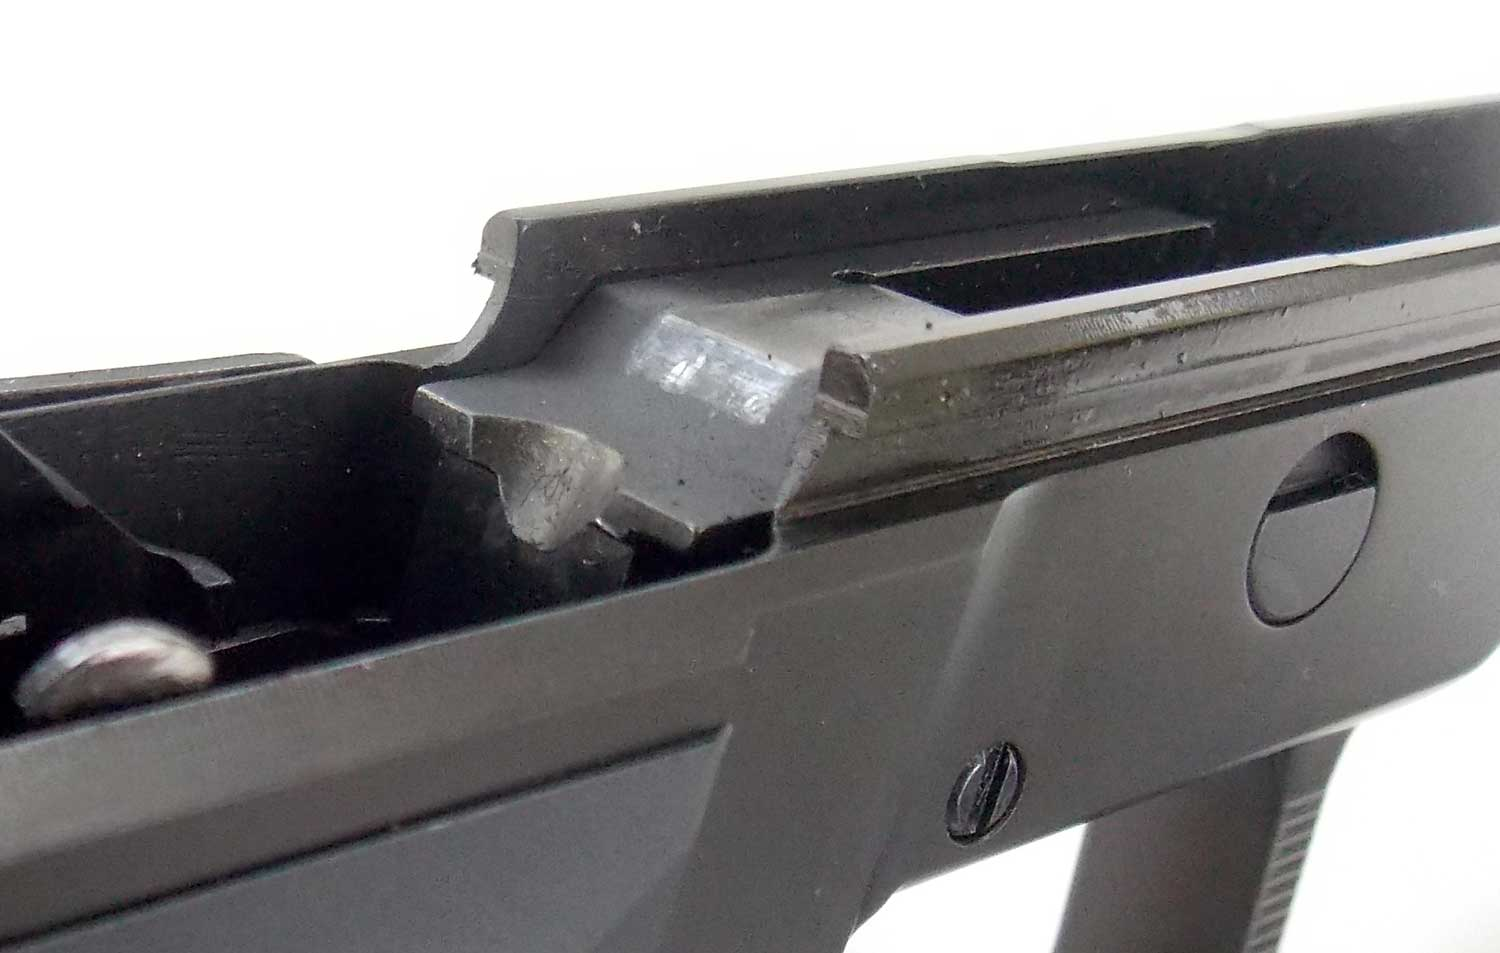 Frame of the AREX Rex Zero 1 pistol